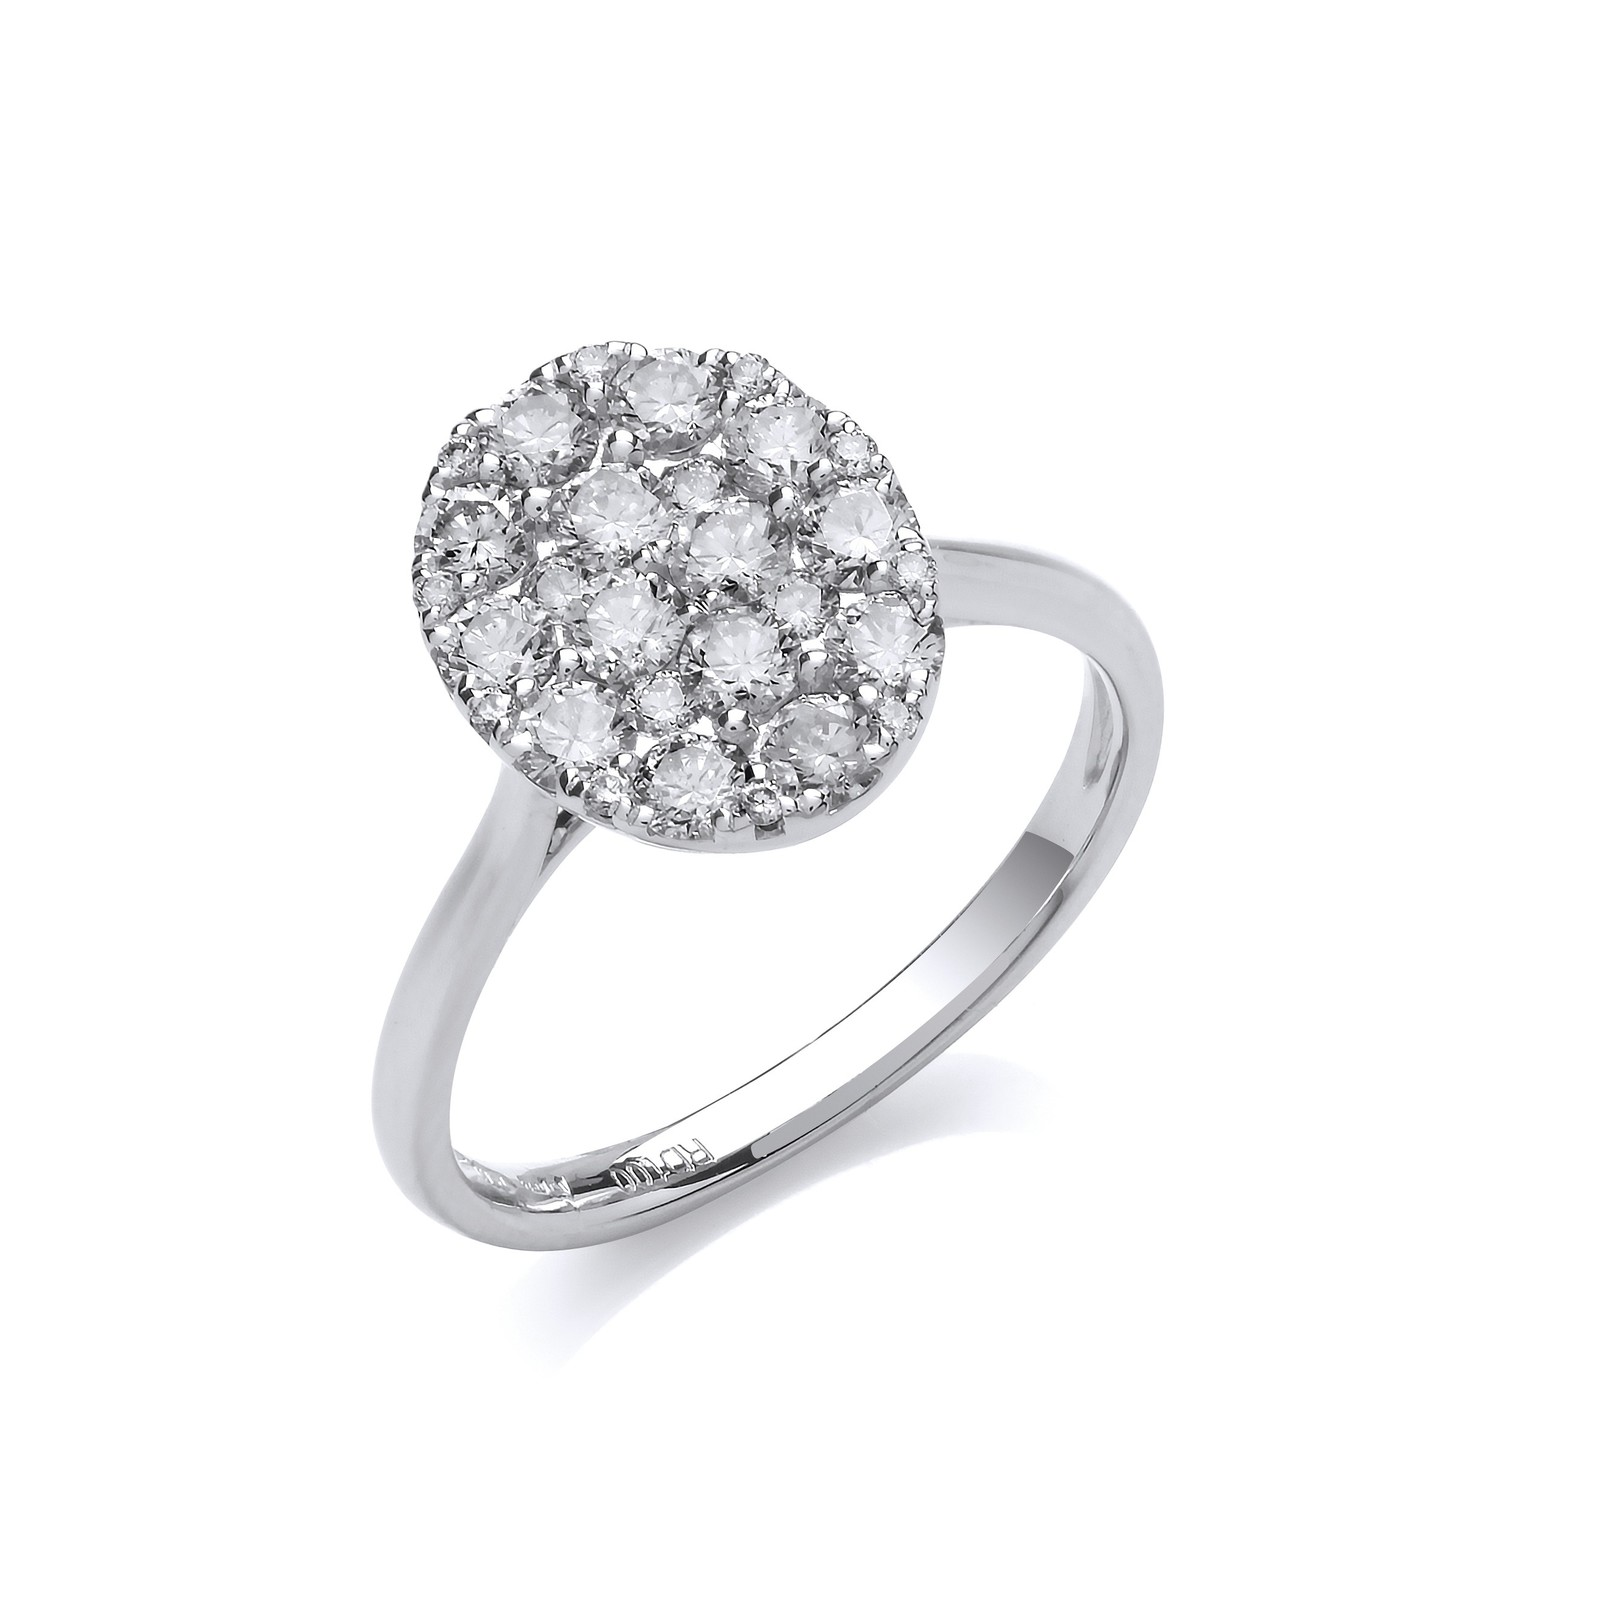 18ct White Gold 1.00ct Oval Dress Ring